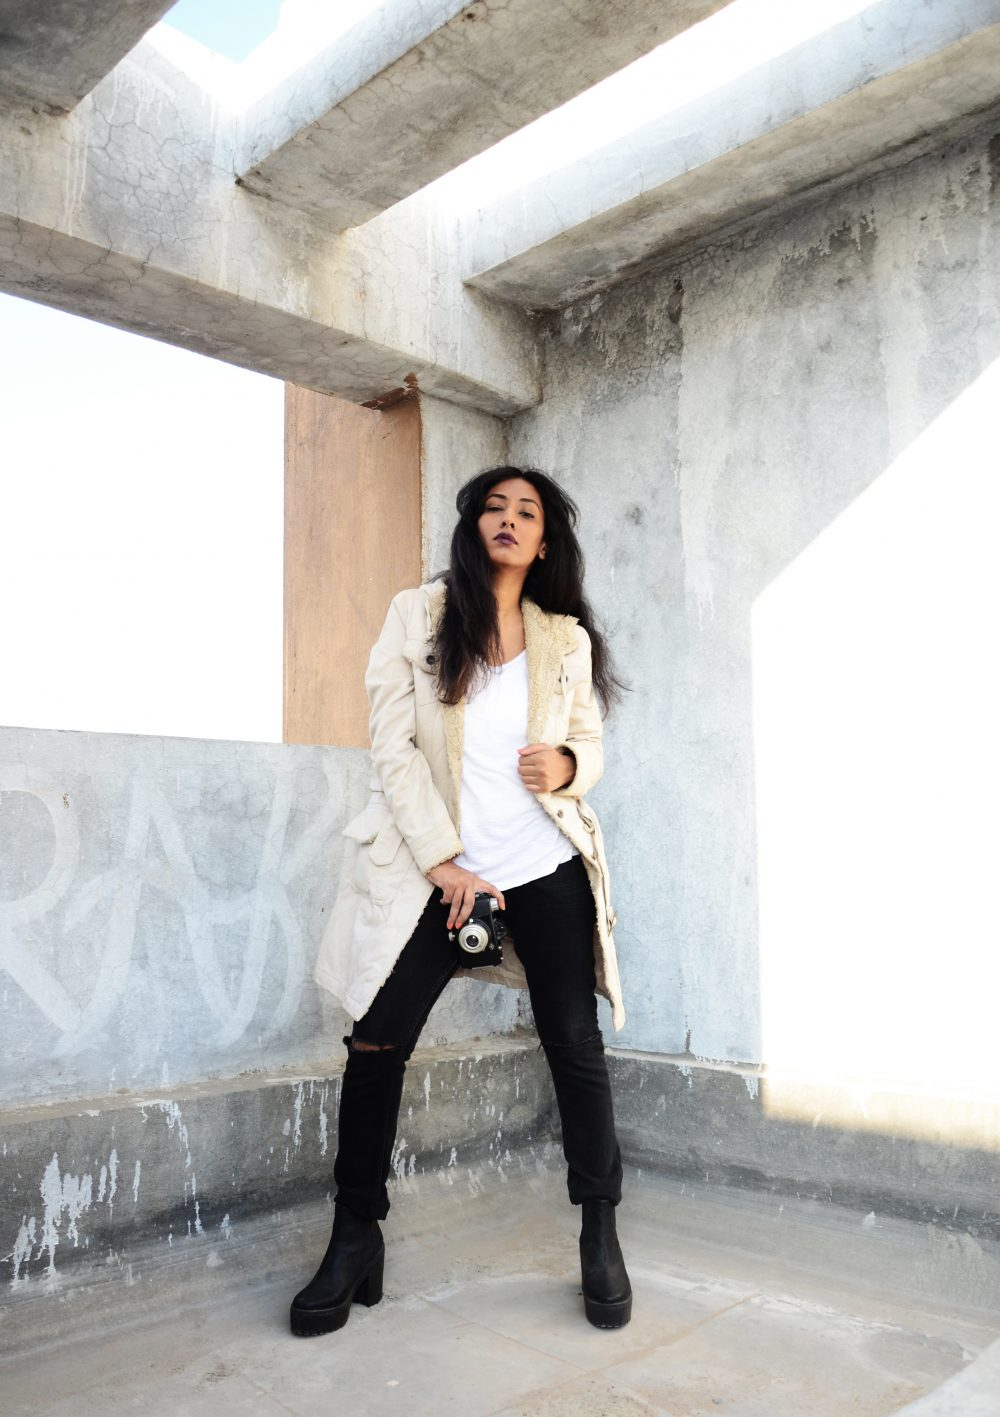 Lookbook ; Fur ; Coat ; Long Coat ; Beige ; White Tee ; Ripped Denims; Conceptual ; fashion photography ; Ankle Boots ; Asos boots ; monochrome ; strong ; Dark lips ; winter fashion ; winter outfit ; winter look ; street style ; street fashion ; Winter ; Dark ; Naznin ; Naznin Suhaer ; hyderabad fashion bloggers ; hyderabad bloggers ; hyderabad fashion blogger ; I Dress for the Applause ;